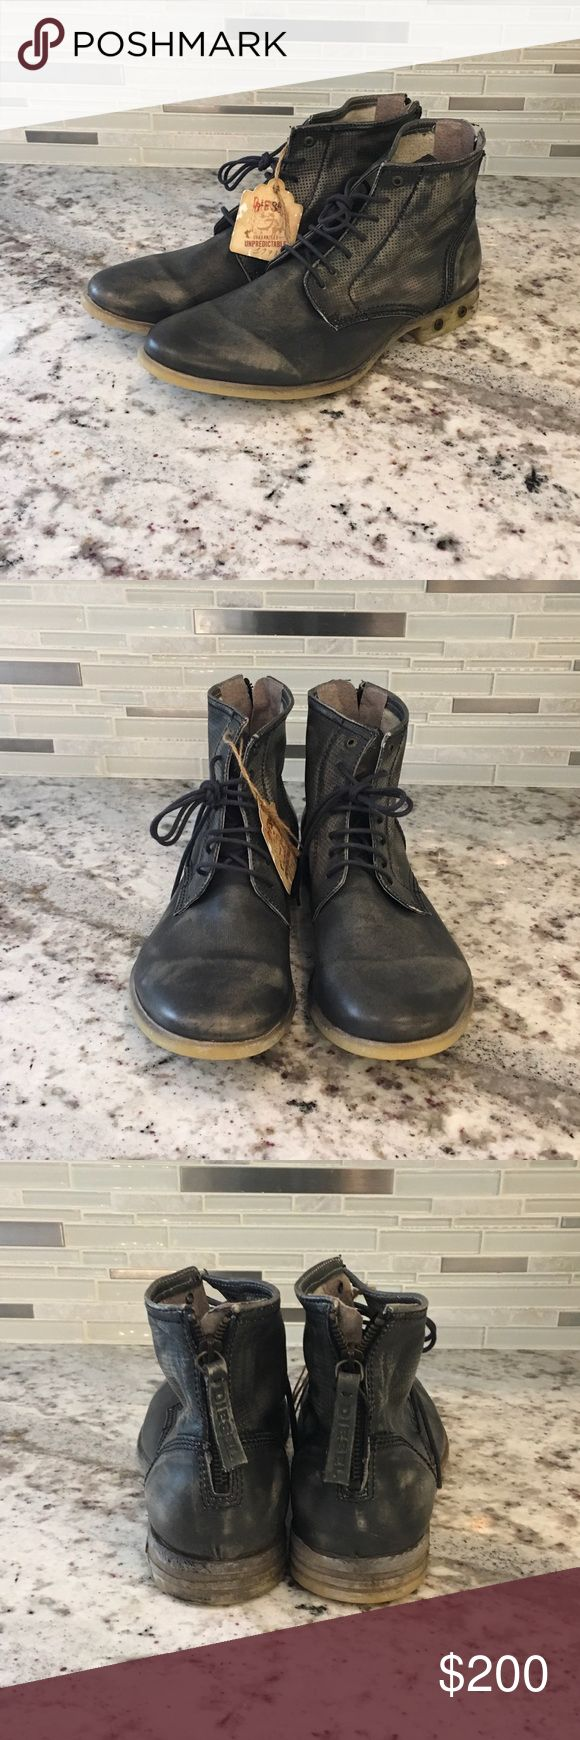 Mens Diesel Boots NEVER WORN!!! Garment-Dyed Mature leather with an elegant vintage-effect stitching. Diesel Shoes Boots